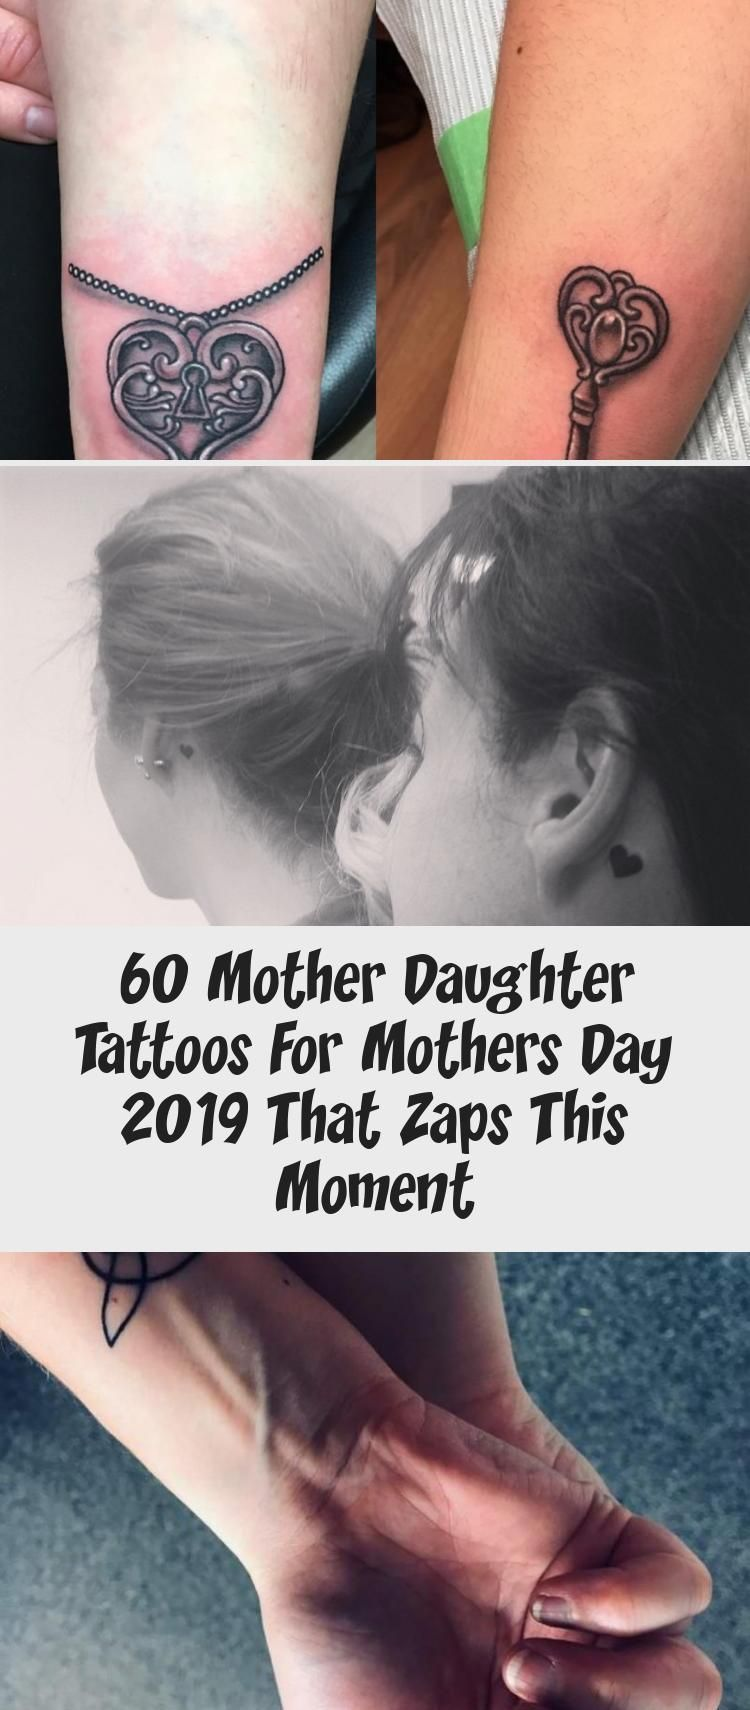 Photo of 60 Mother Daughter Tattoos For Mothers Day 2019 That Zaps This Moment – Tattoos …